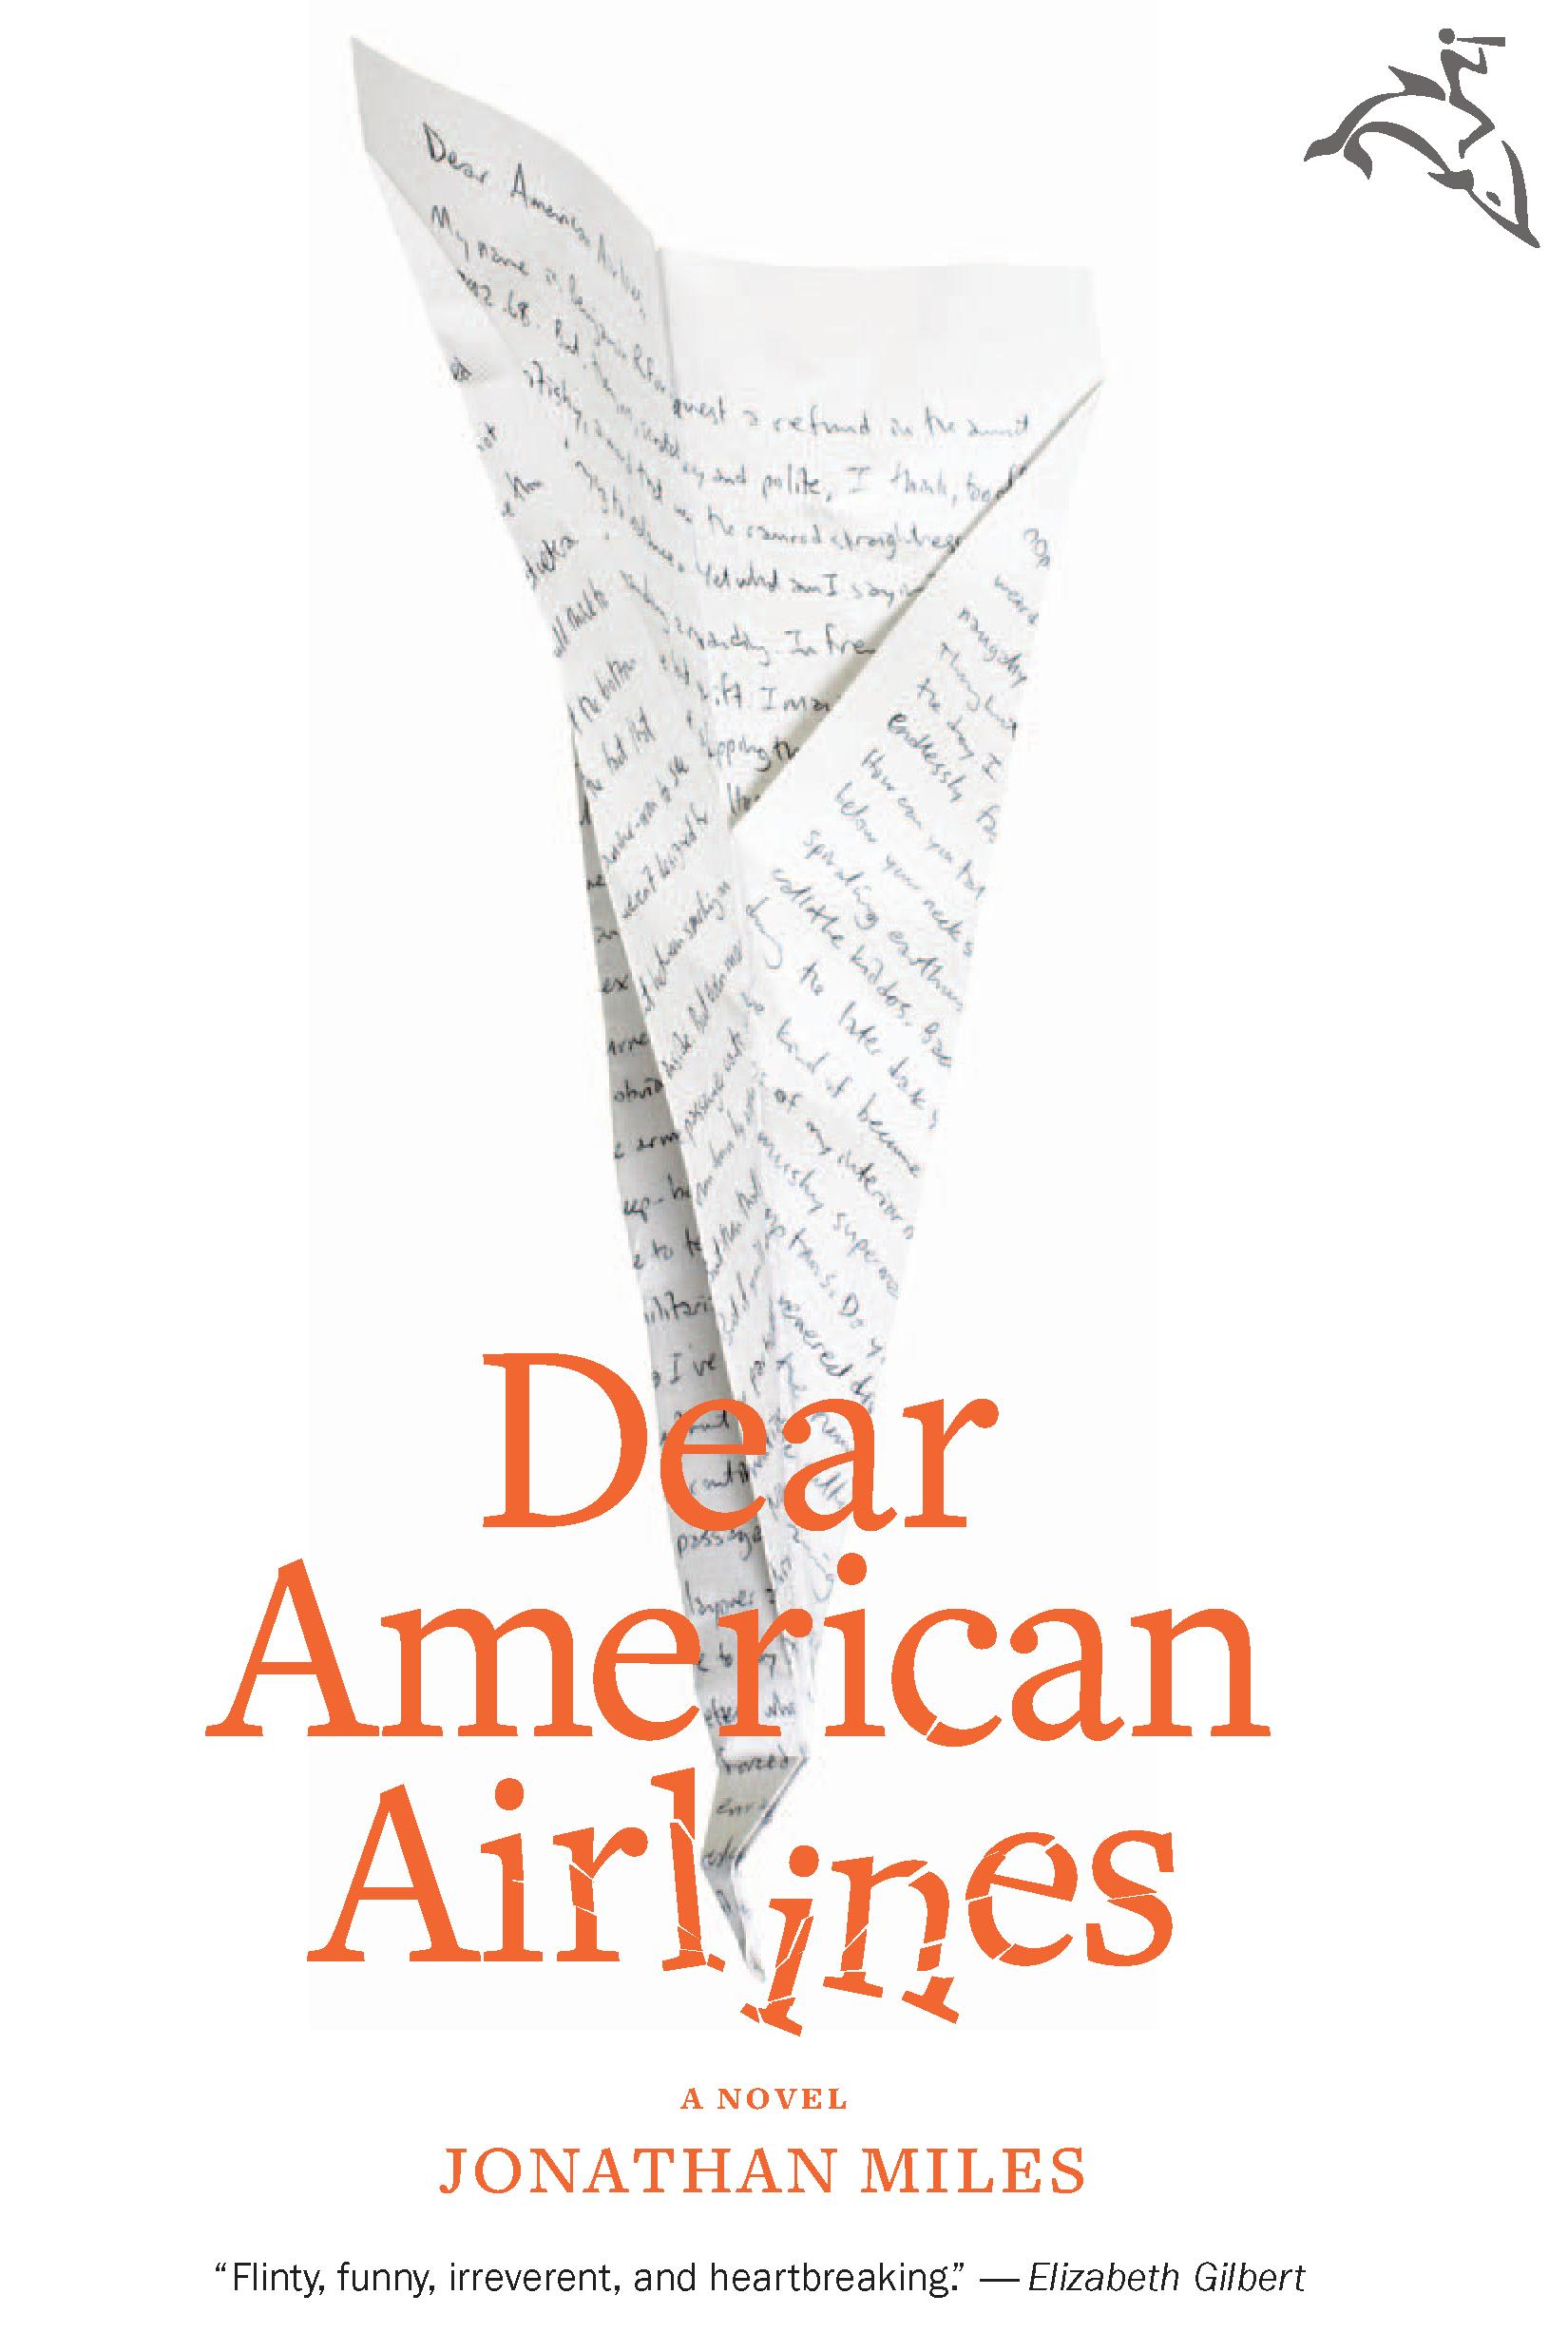 Dear American Airlines By: Jonathan Miles